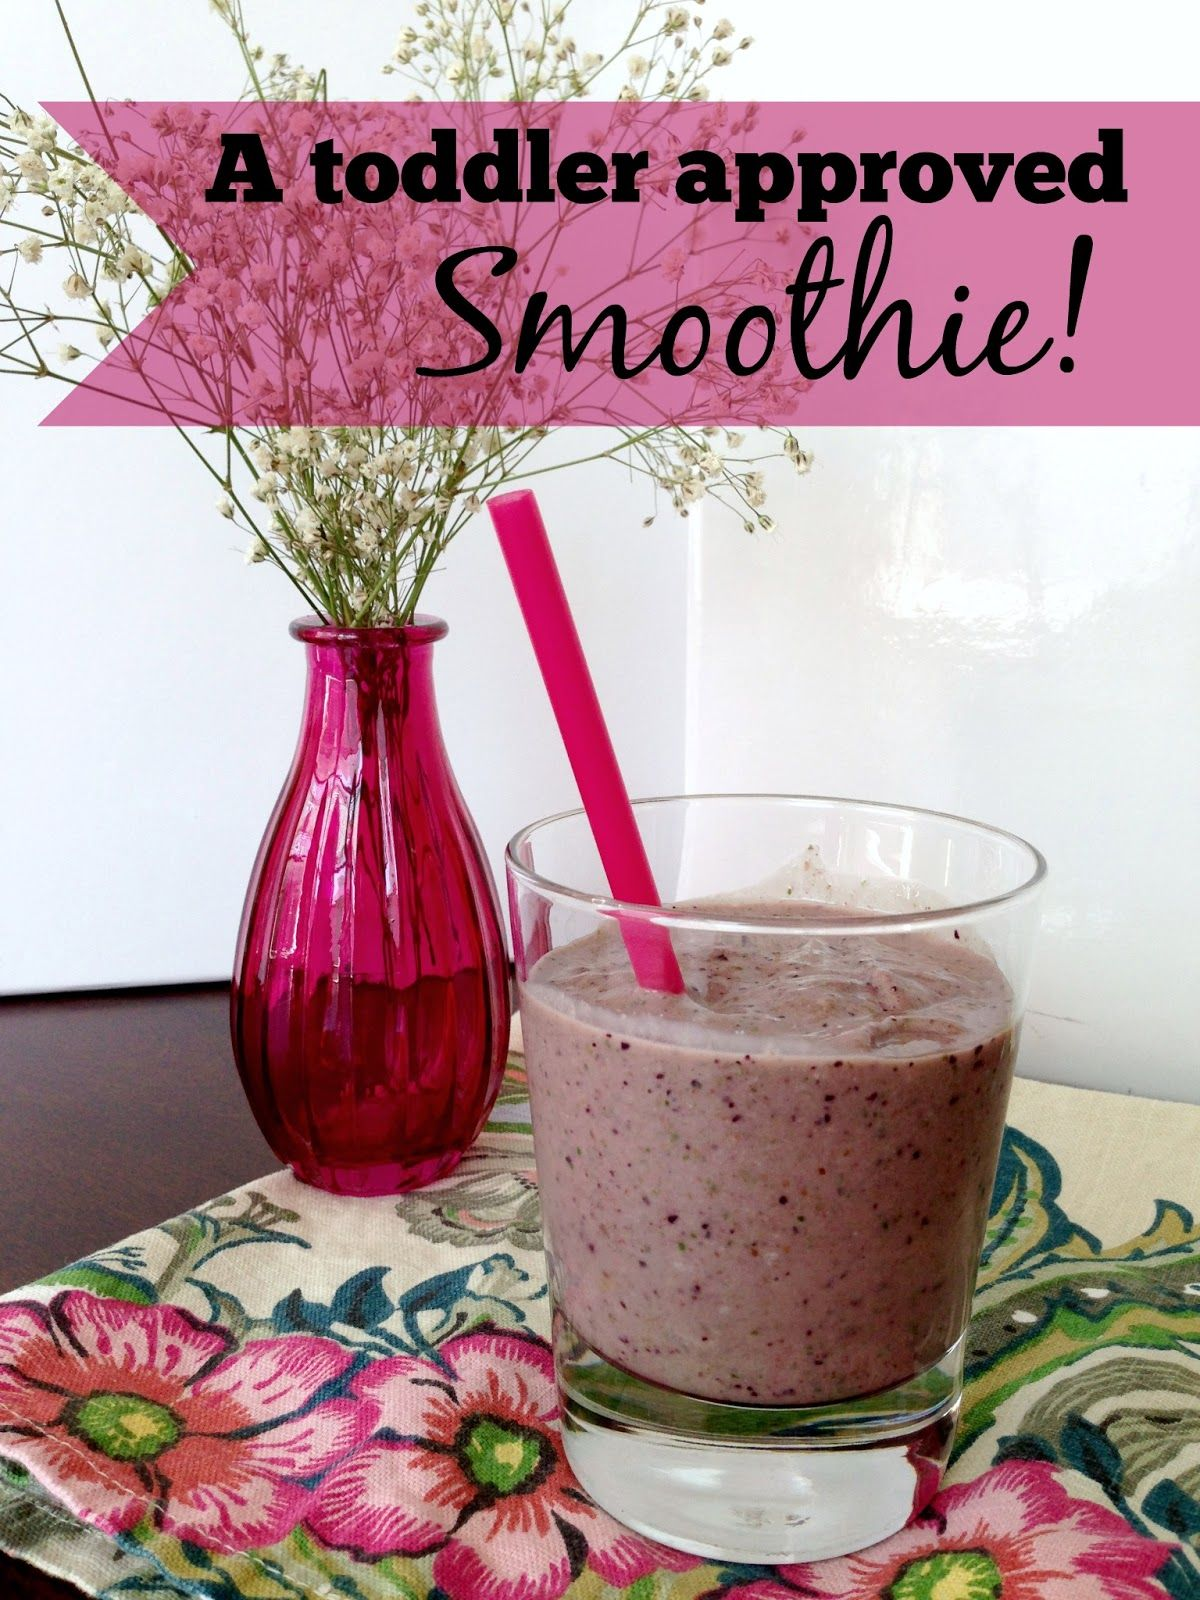 A toddler approved smoothie! Blueberries, spinach, coconut oil, Greek yogurt, flax seeds!